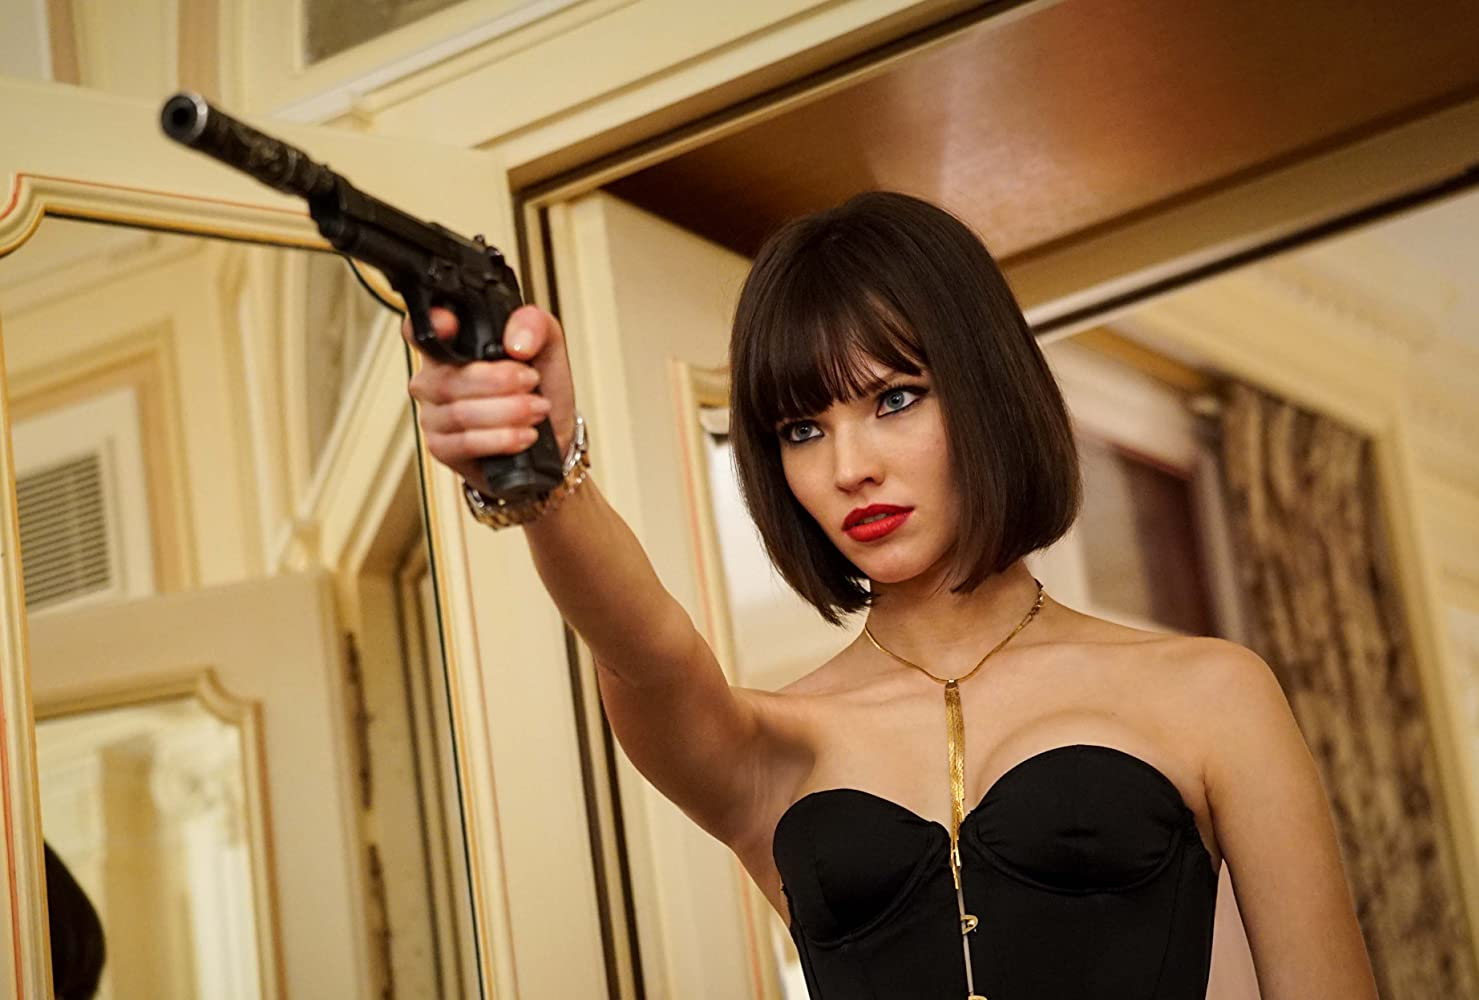 Anna is Luc Besson's latest action heroine